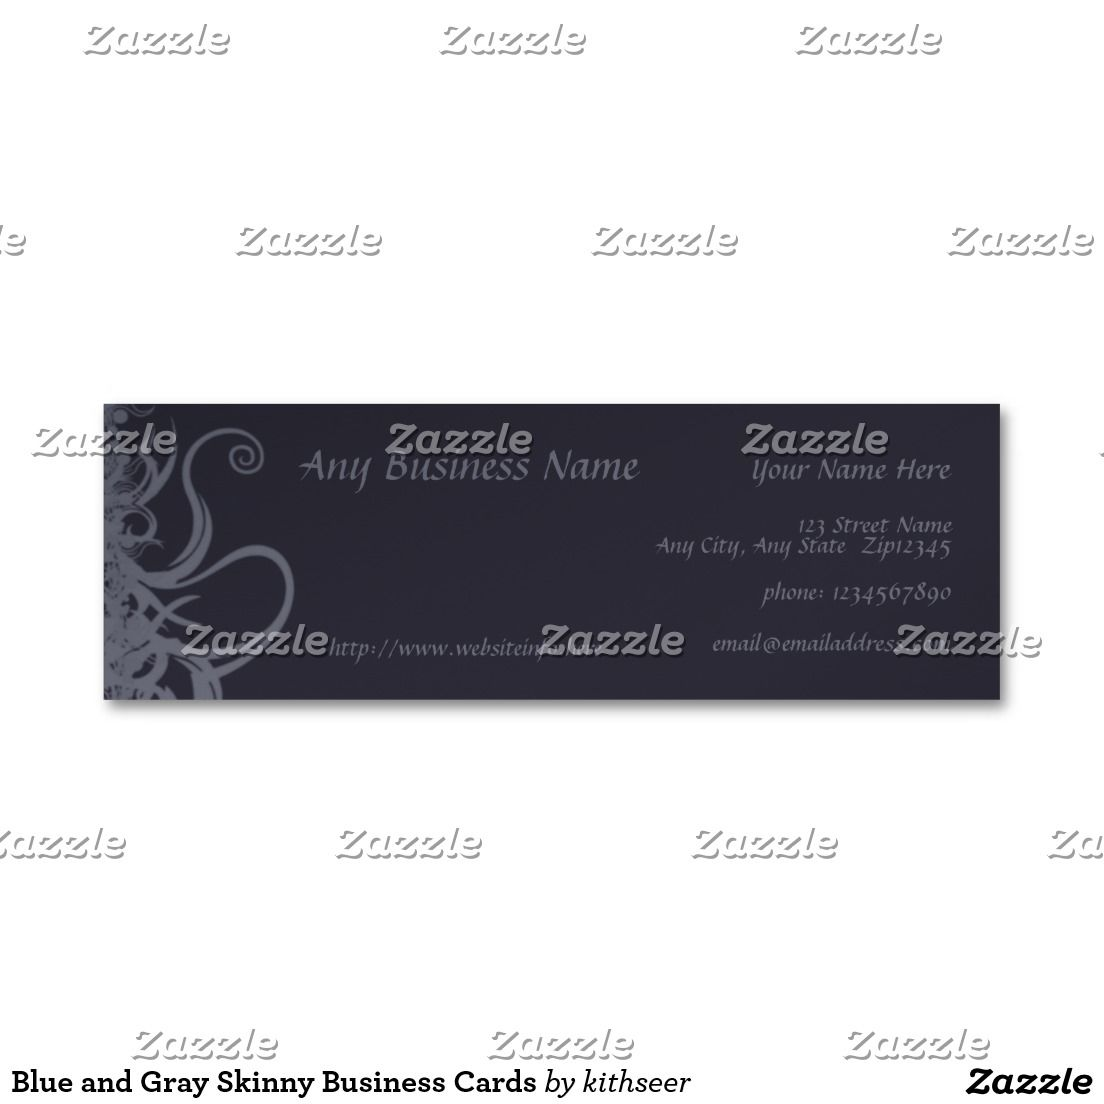 Blue and Gray Skinny Business Cards | Business Card Templates ...